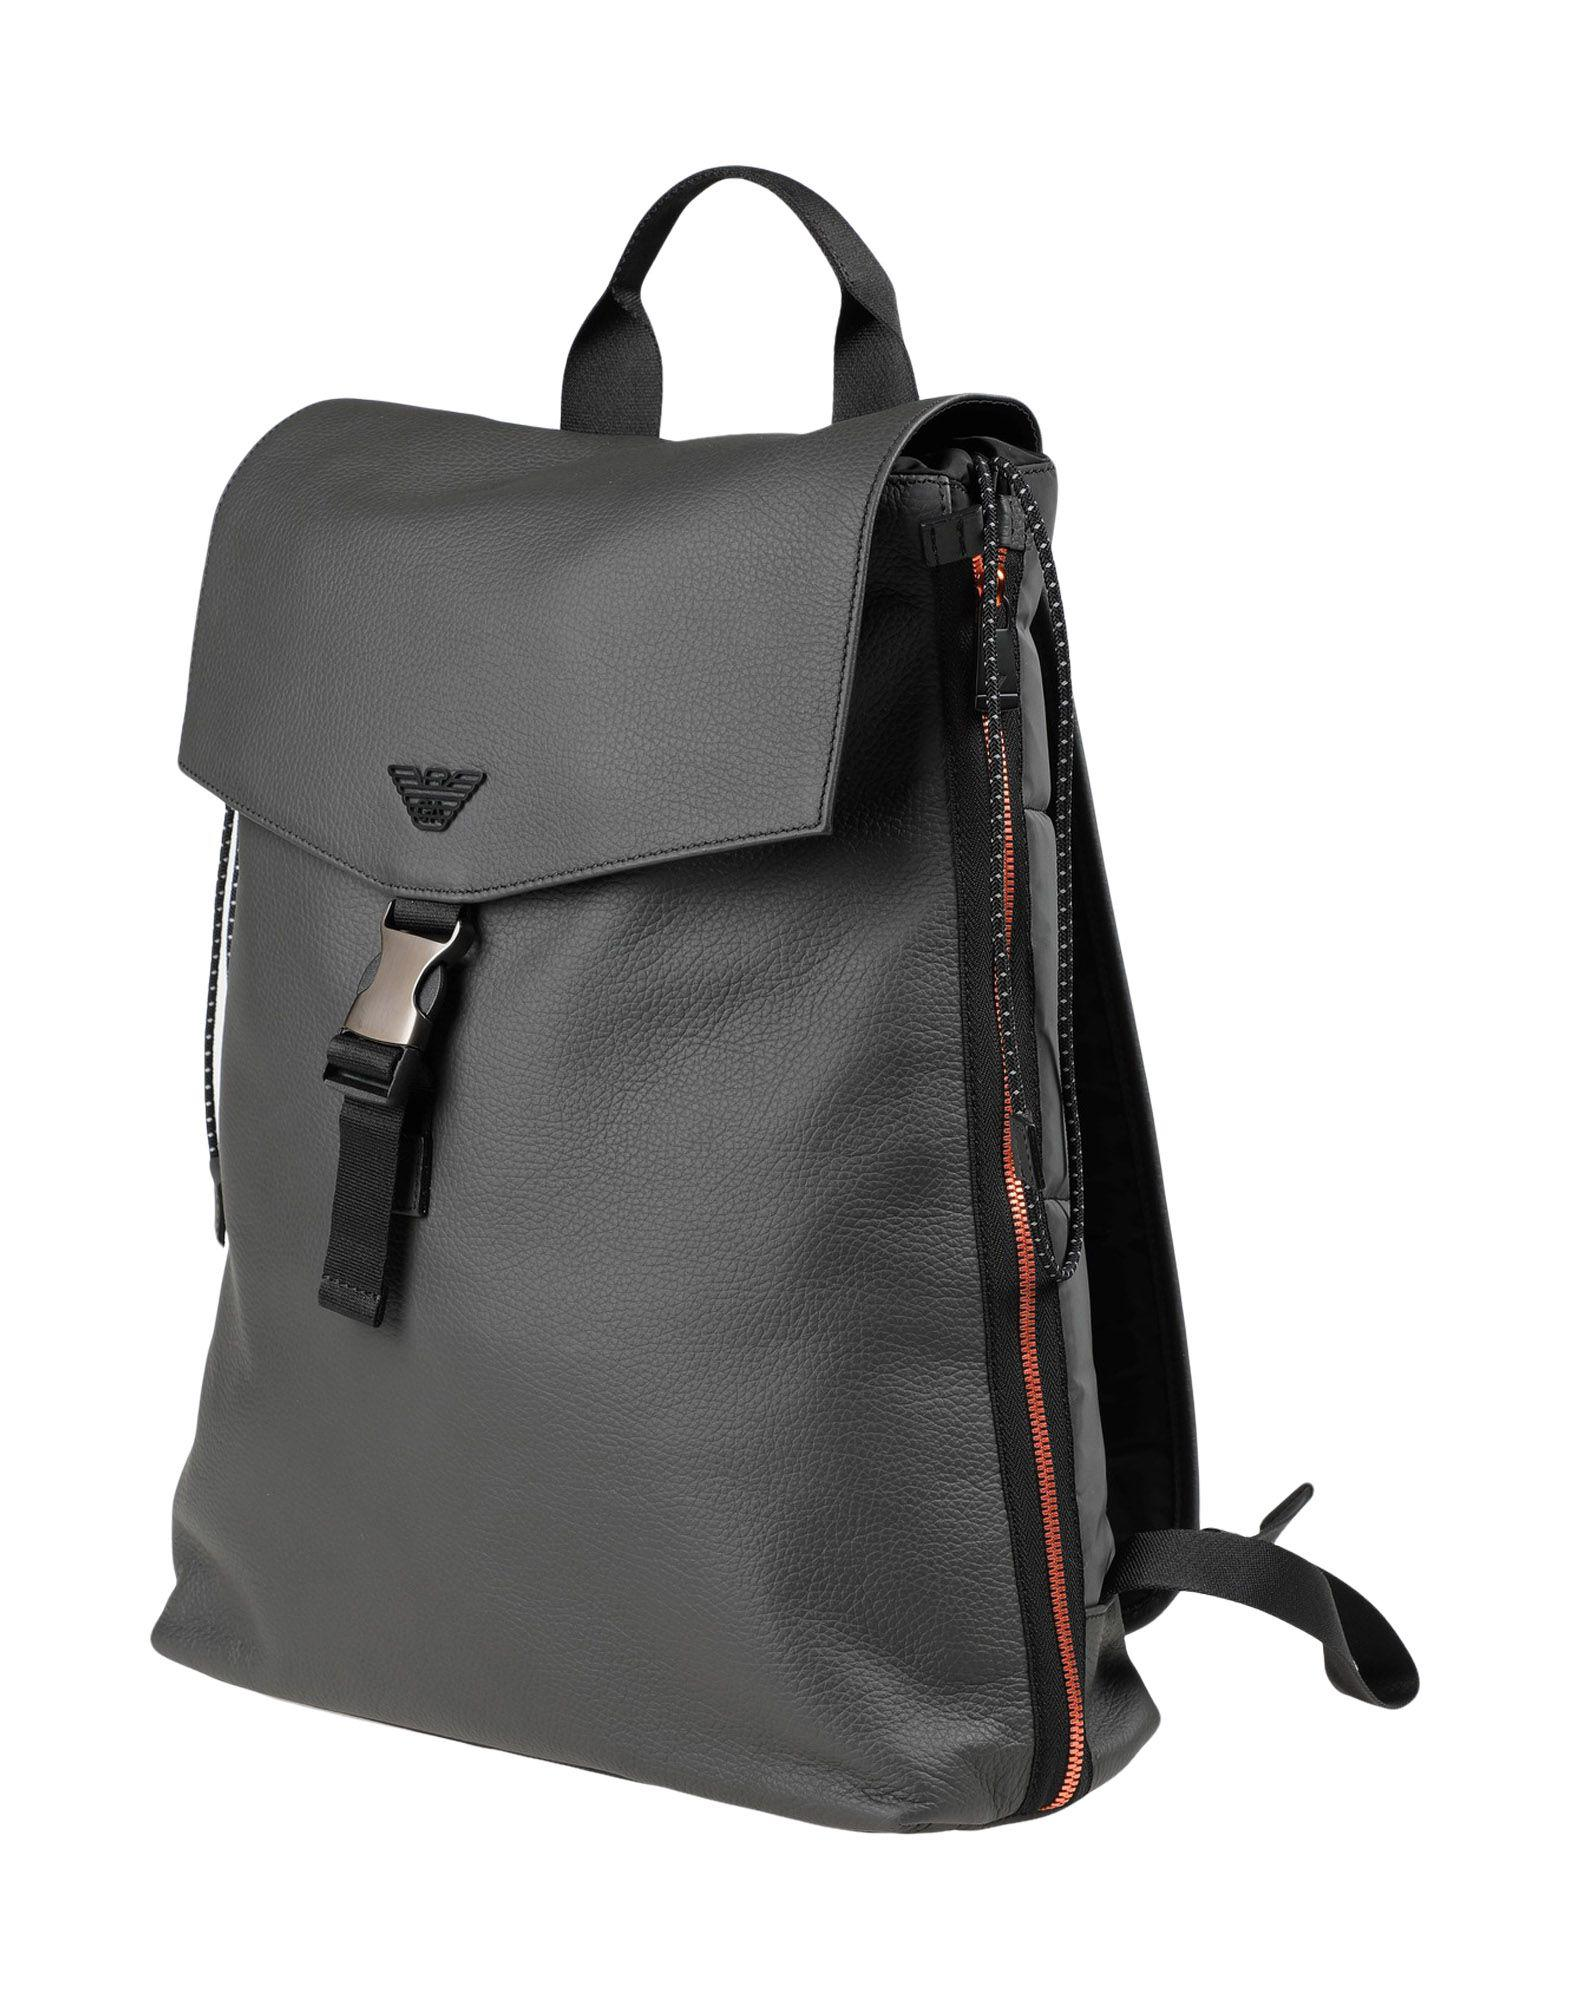 Lyst - Emporio Armani Backpacks   Bum Bags in Gray for Men 05762ef96860d